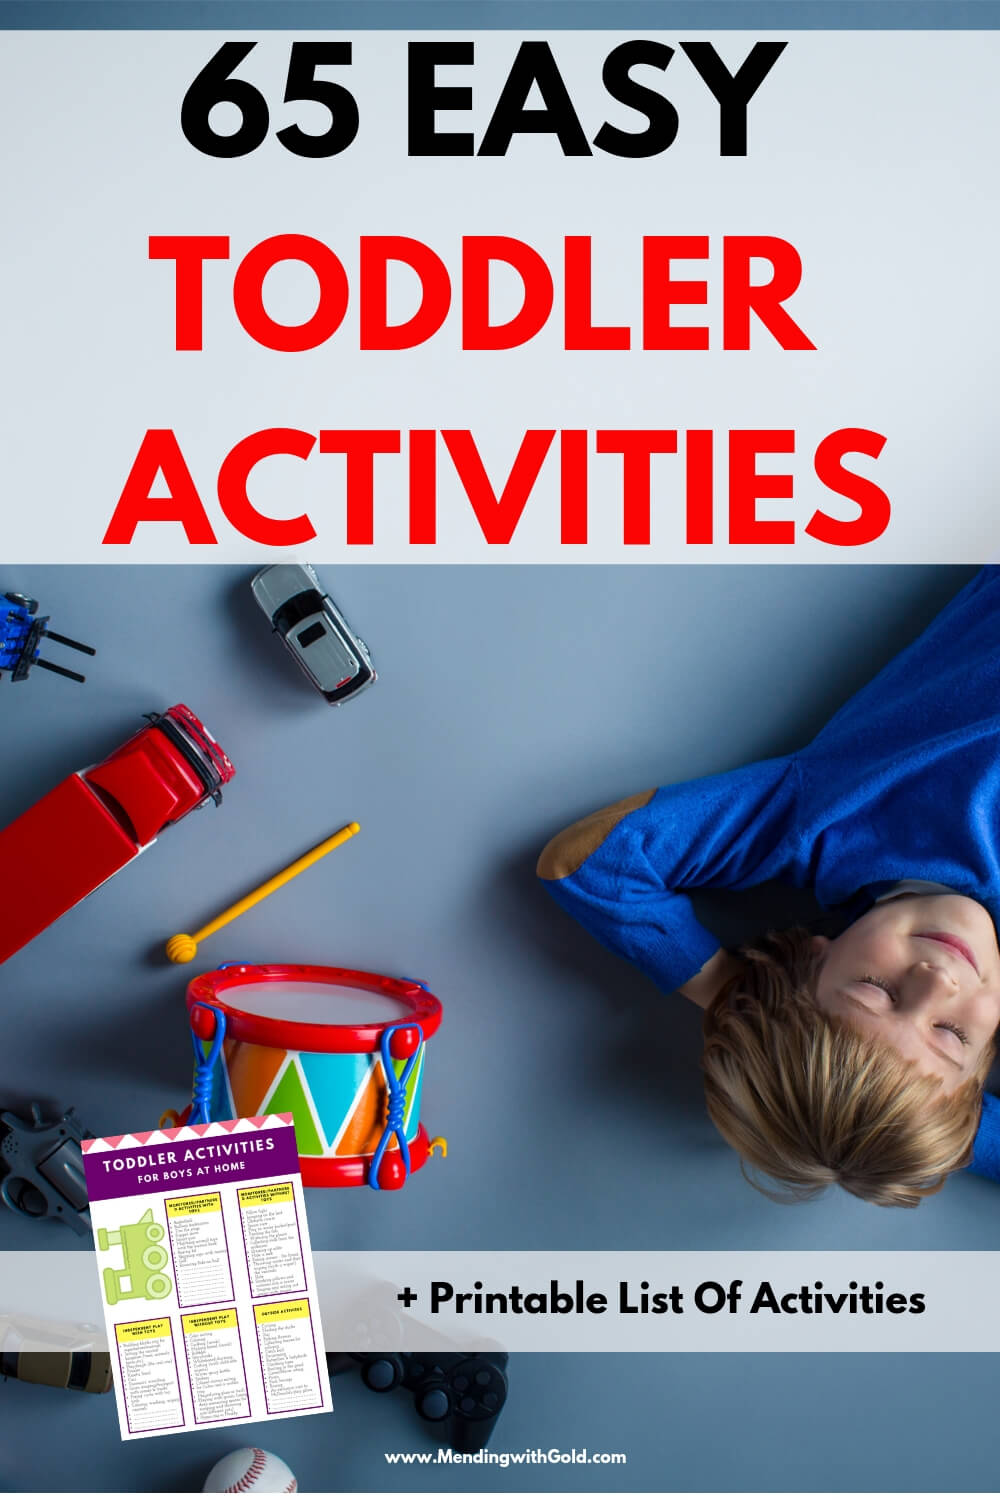 Raising kids (toddlers and pre-schoolers!) is not easy! Great ideas for how to wear out a toddler indoors! Use these recreational activities for pre-schoolers and toddlers who are bored but YOU'RE busy! Includes quiet activities for 3-5 year olds, outdoor activities for 3-5 year olds and even some open ended activities for 3 year olds. Fun toddler activities for boys at home who are bored + free printable #mom #toddlers #preschoolers #stayathomemom #momlife #momadvice #kidsandparenting